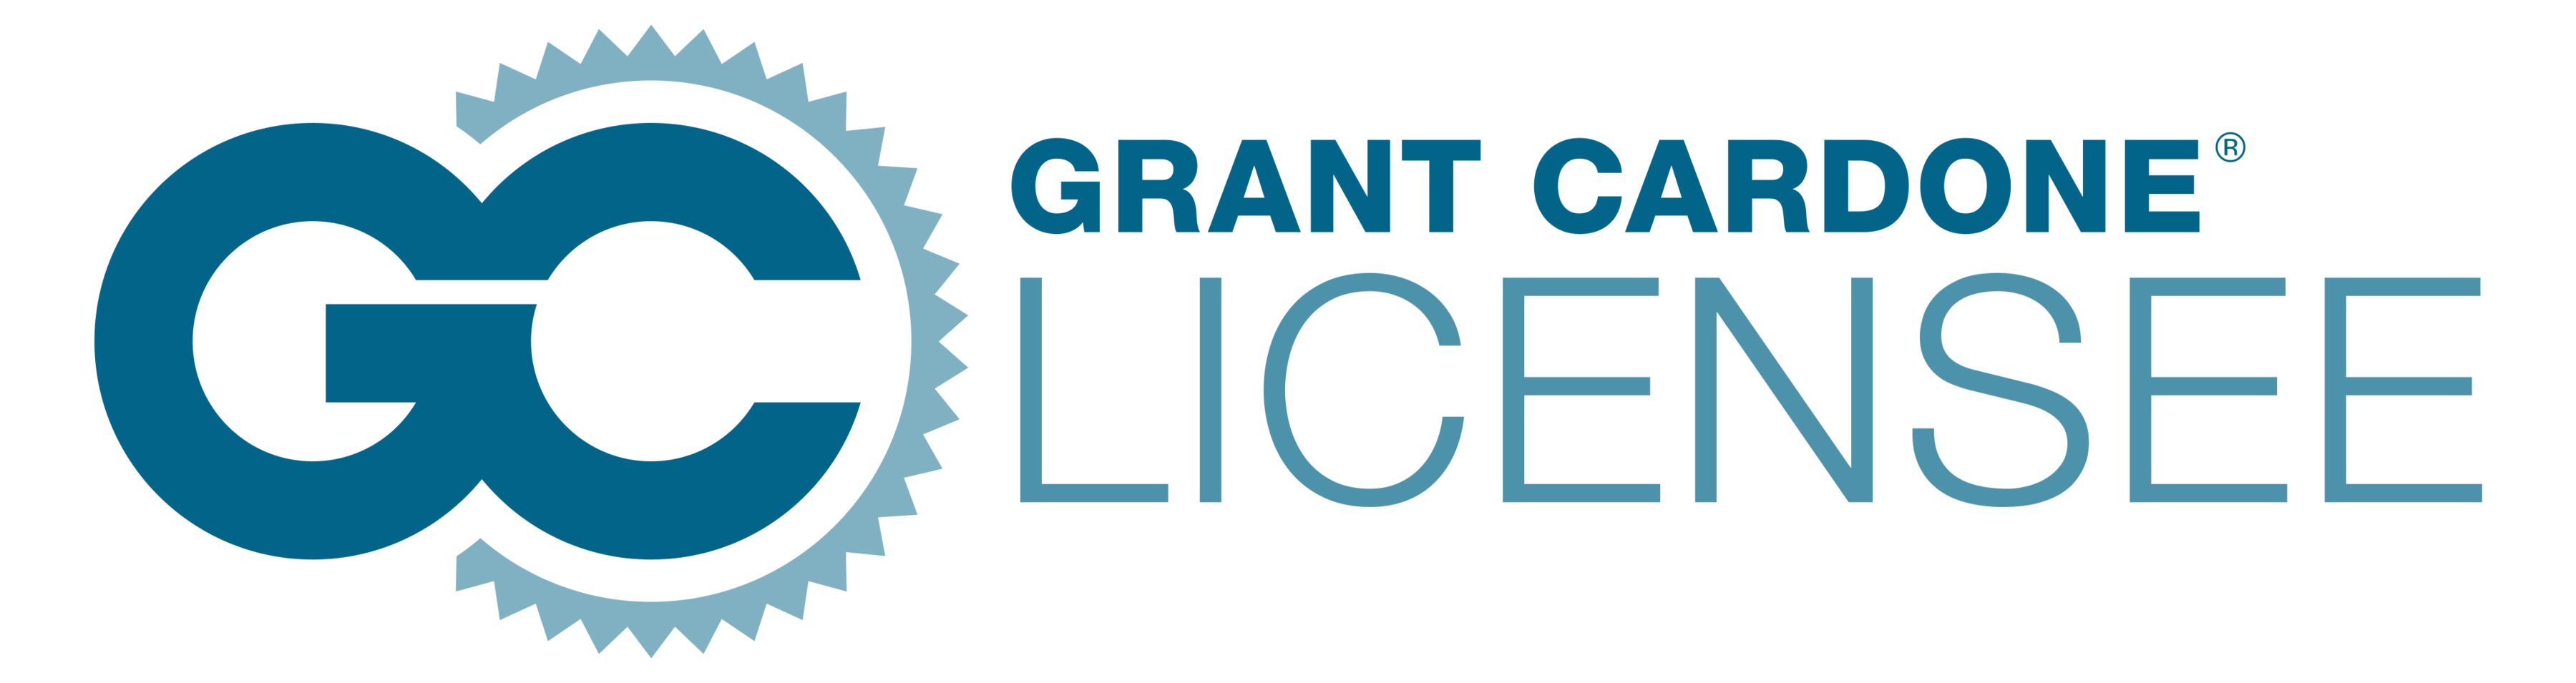 Grant Cardone Licensee Program - Horizontal LOGO.png